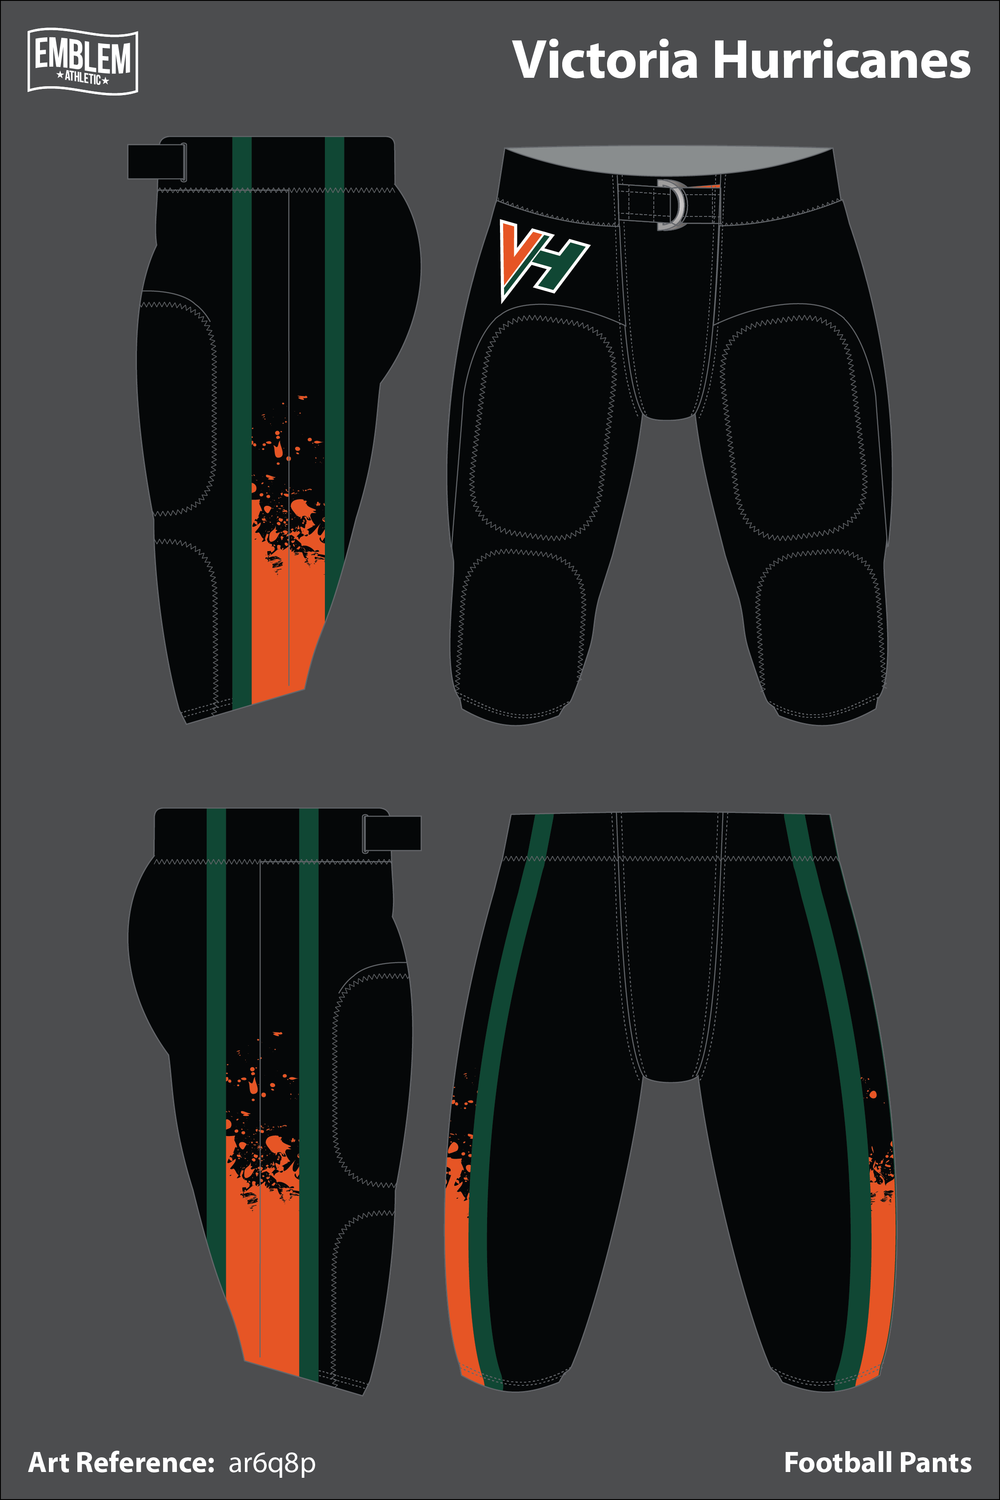 Victoria Hurricanes  - Revisions: 0Total Sales: $0Commission: $0Click image to access store.